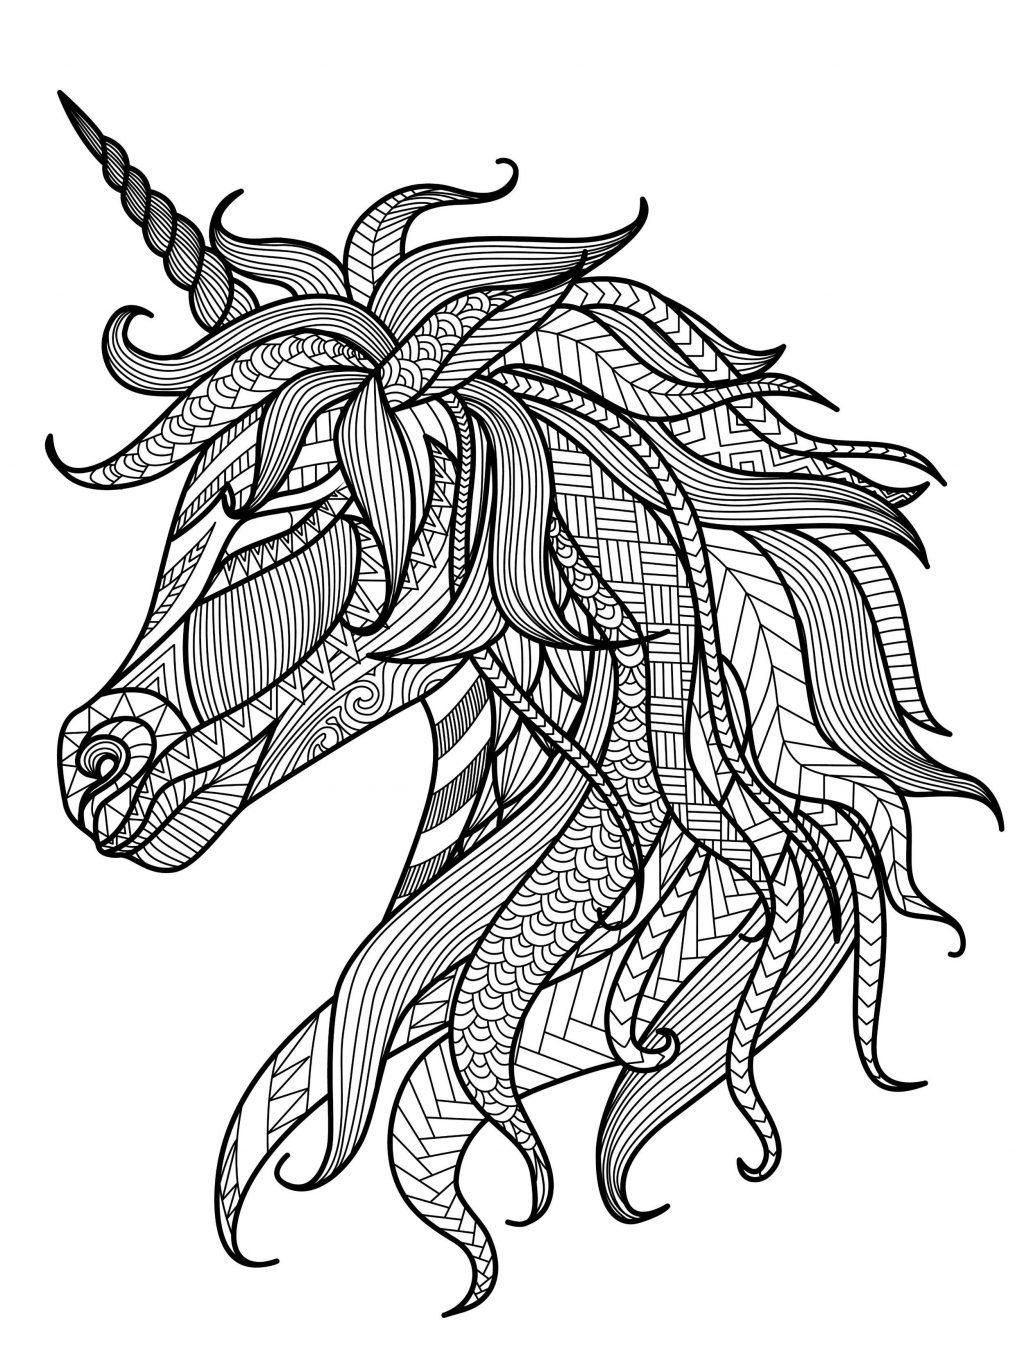 Red Queen Coloring Book New Coloring Pages Full Size Coloring Colouring Book In 2020 With Images Animal Coloring Books Unicorn Coloring Pages Horse Coloring Pages